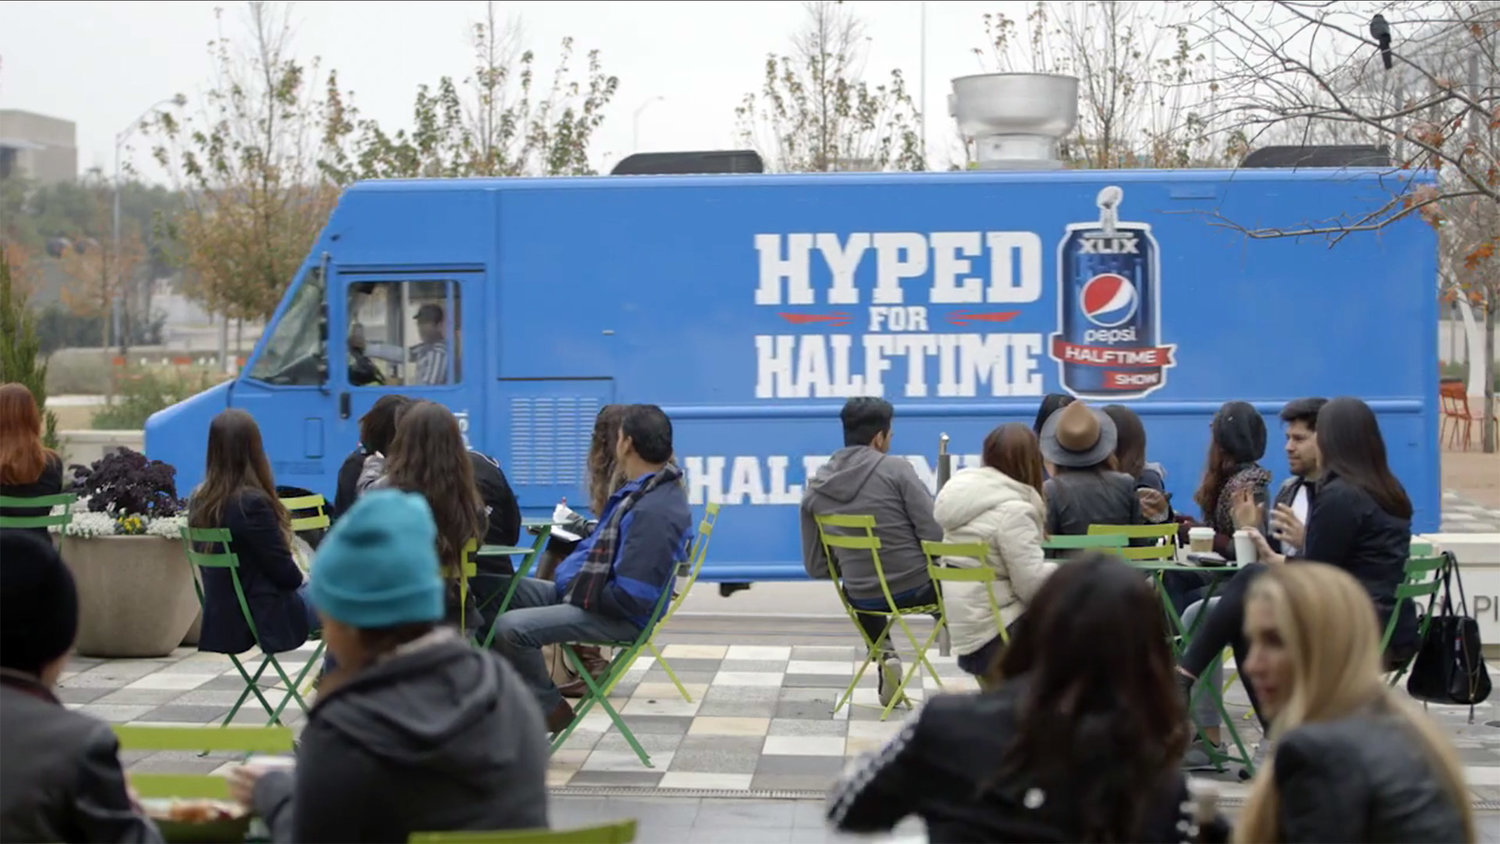 - PEPSI HYPED FOR HALFTIME